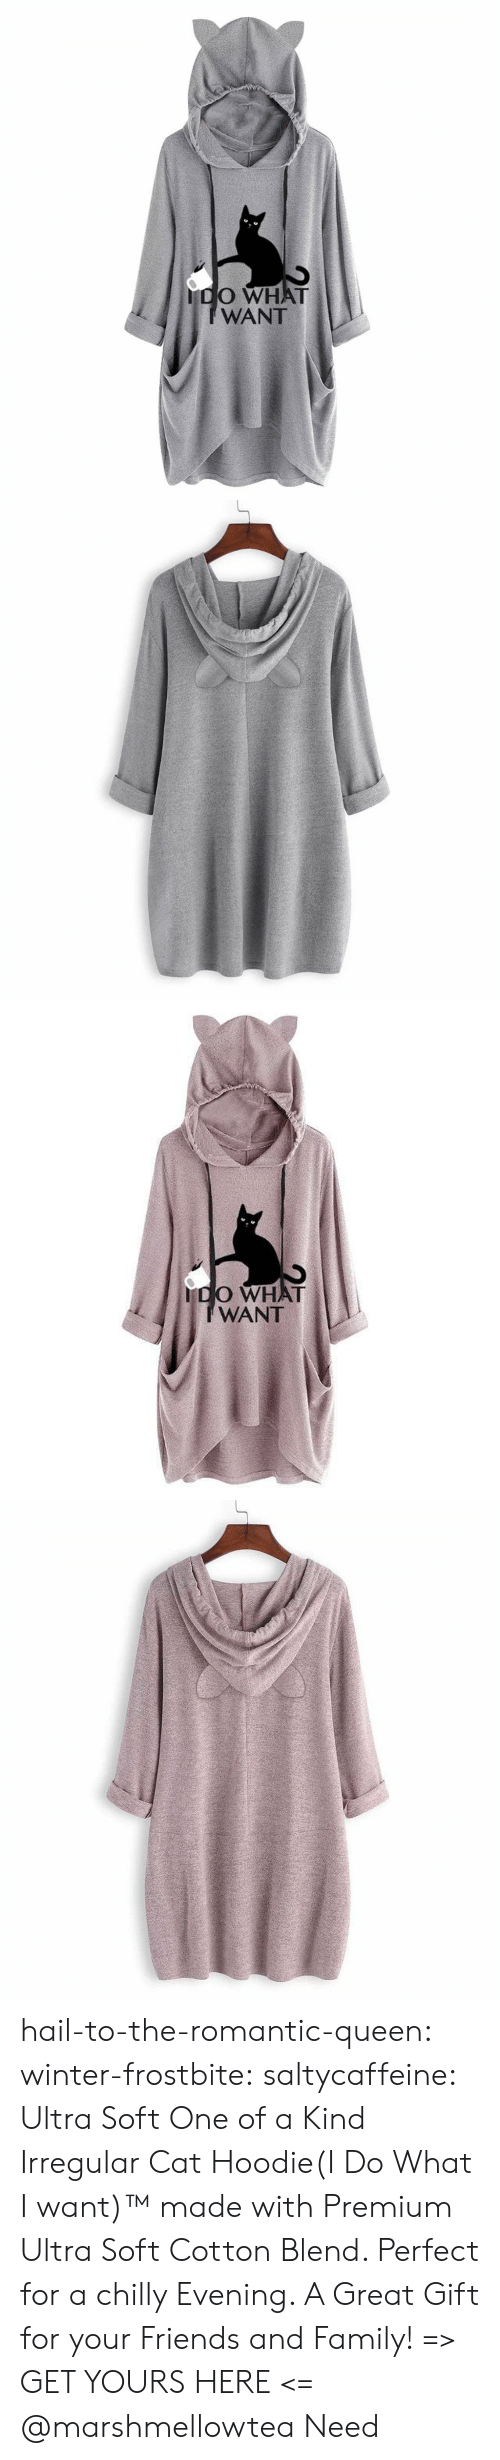 Family, Friends, and Tumblr: do WHAT  IWANT   DO WHAT  IWANT hail-to-the-romantic-queen:  winter-frostbite:  saltycaffeine: Ultra Soft One of a Kind Irregular Cat Hoodie(I Do What I want)™ made with Premium Ultra Soft Cotton Blend. Perfect for a chilly Evening. A Great Gift for your Friends and Family! => GET YOURS HERE <=   @marshmellowtea   Need